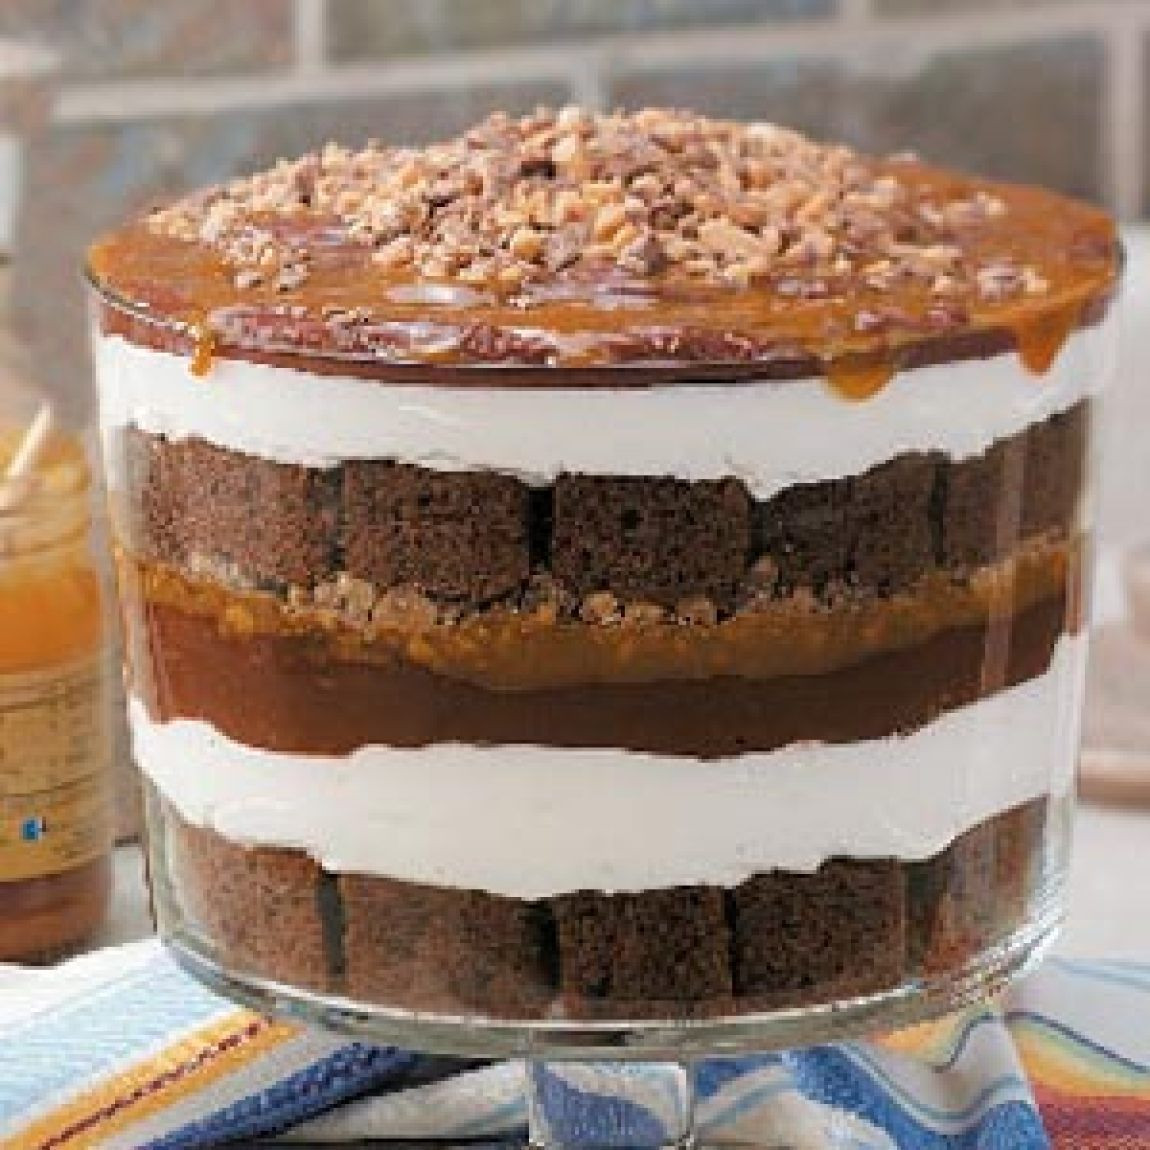 Chocolate Caramel Desserts  Caramel Chocolate Trifle Recipe